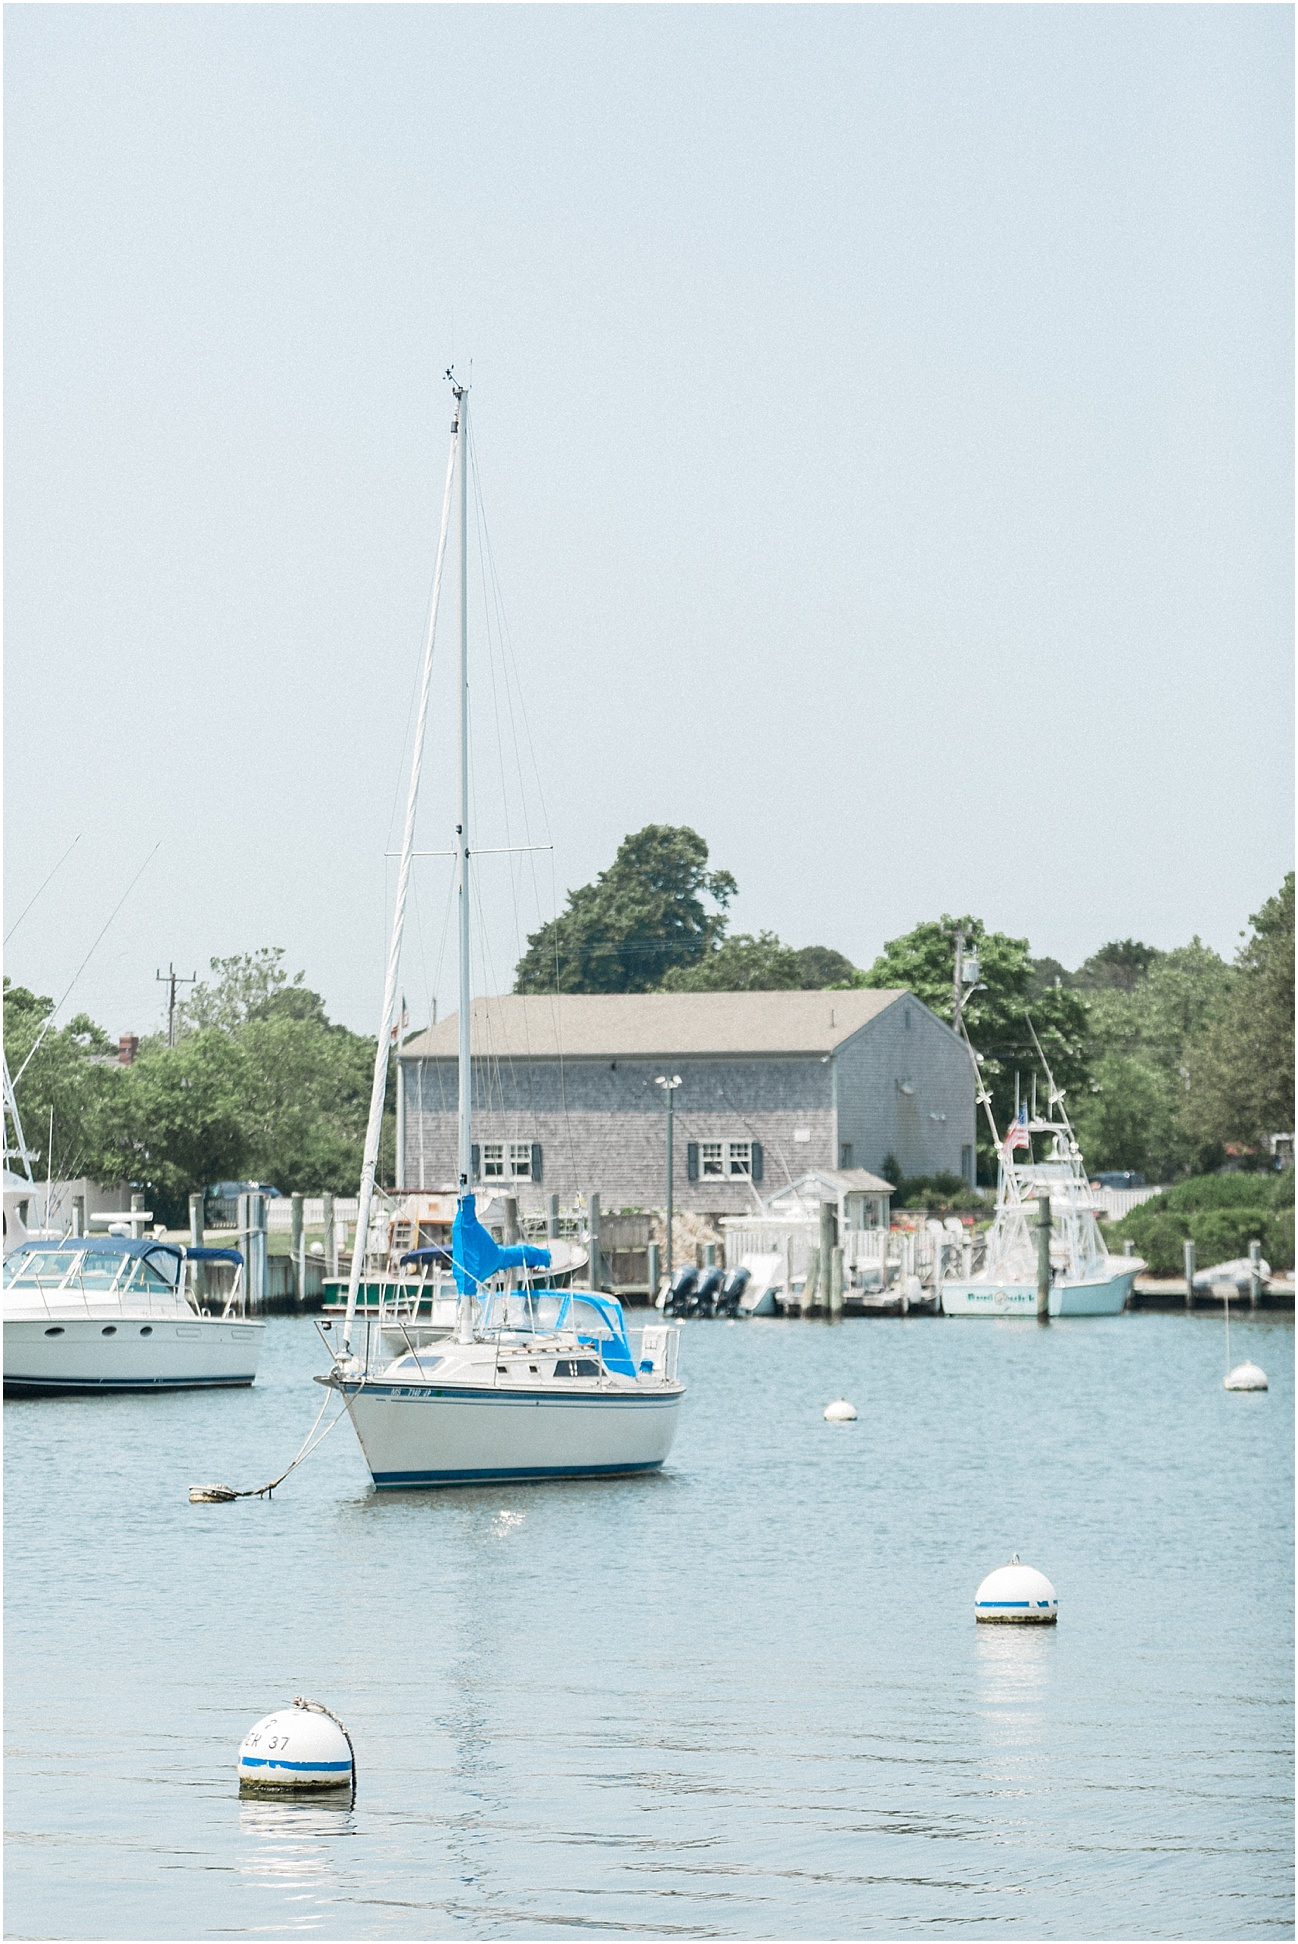 falmouth_liz_eric_proposal_boat_parents_sign_will_you_marry_me_cape_cod_boston_wedding_photographer_meredith_jane_photography_photo_0506.jpg